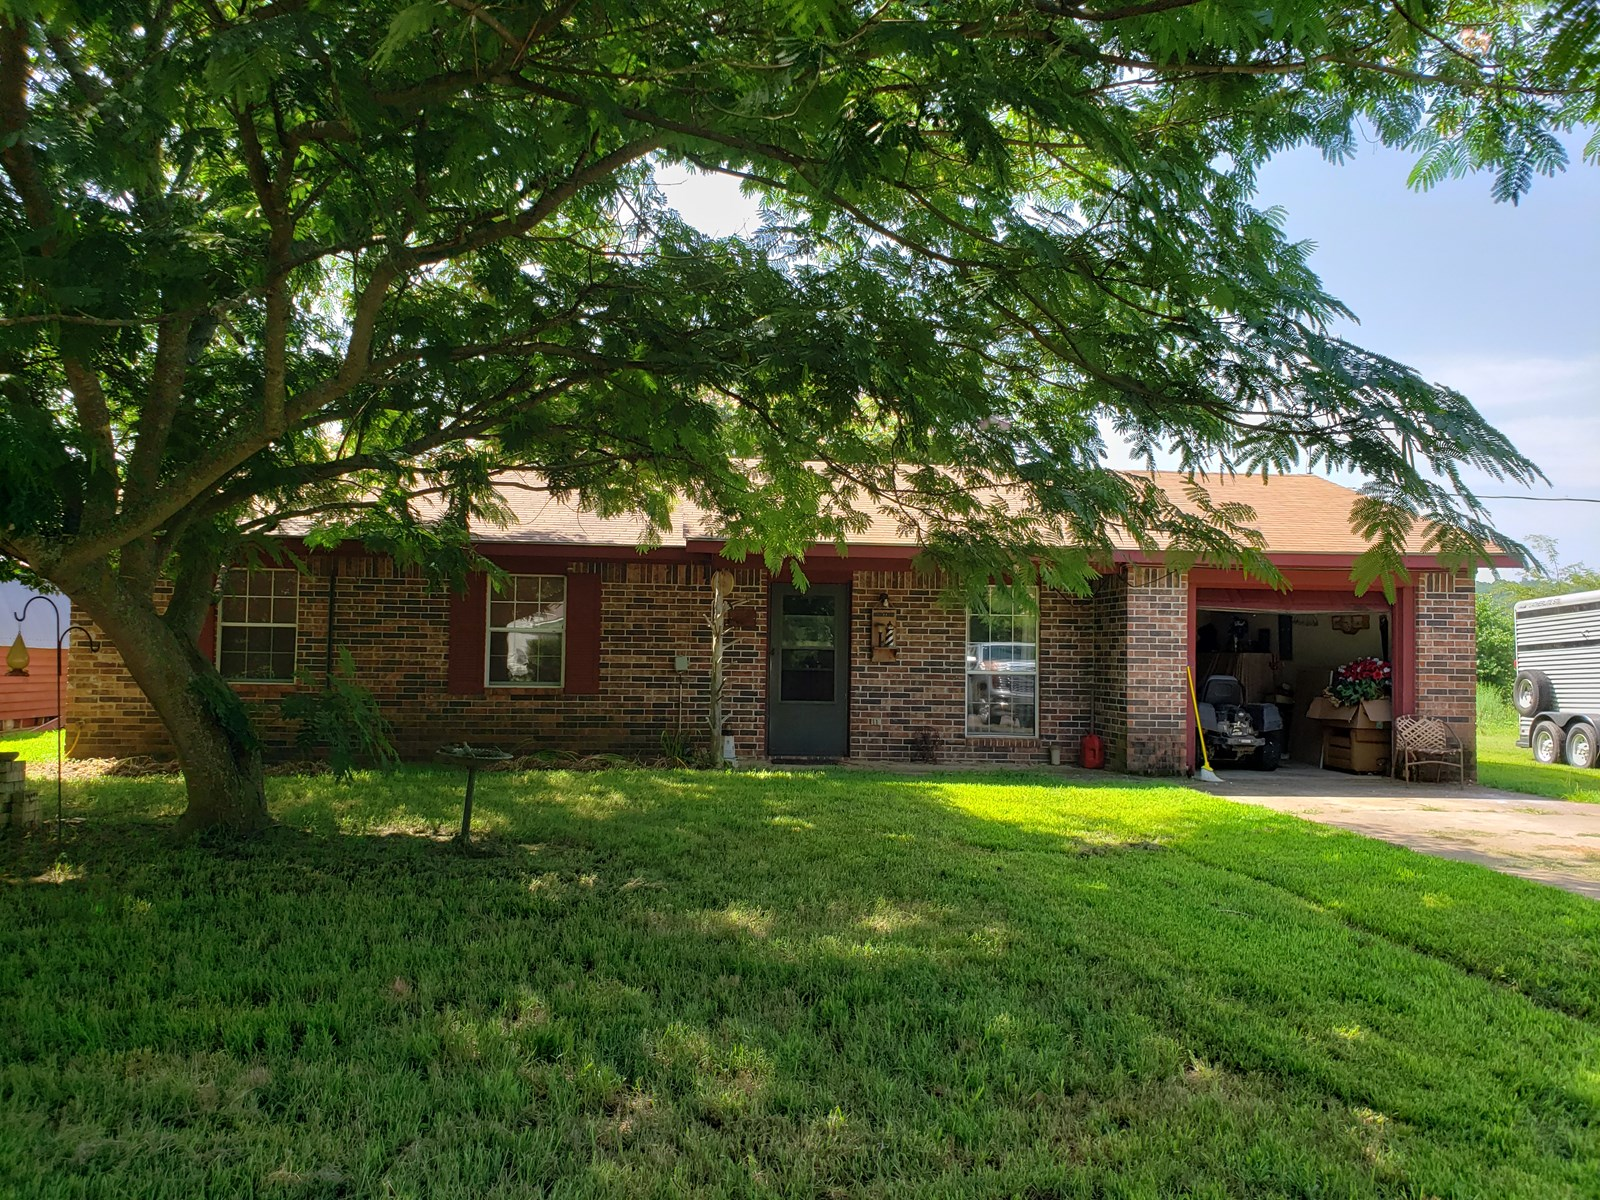 Country Brick Home for Sale – Summerfield, Oklahoma